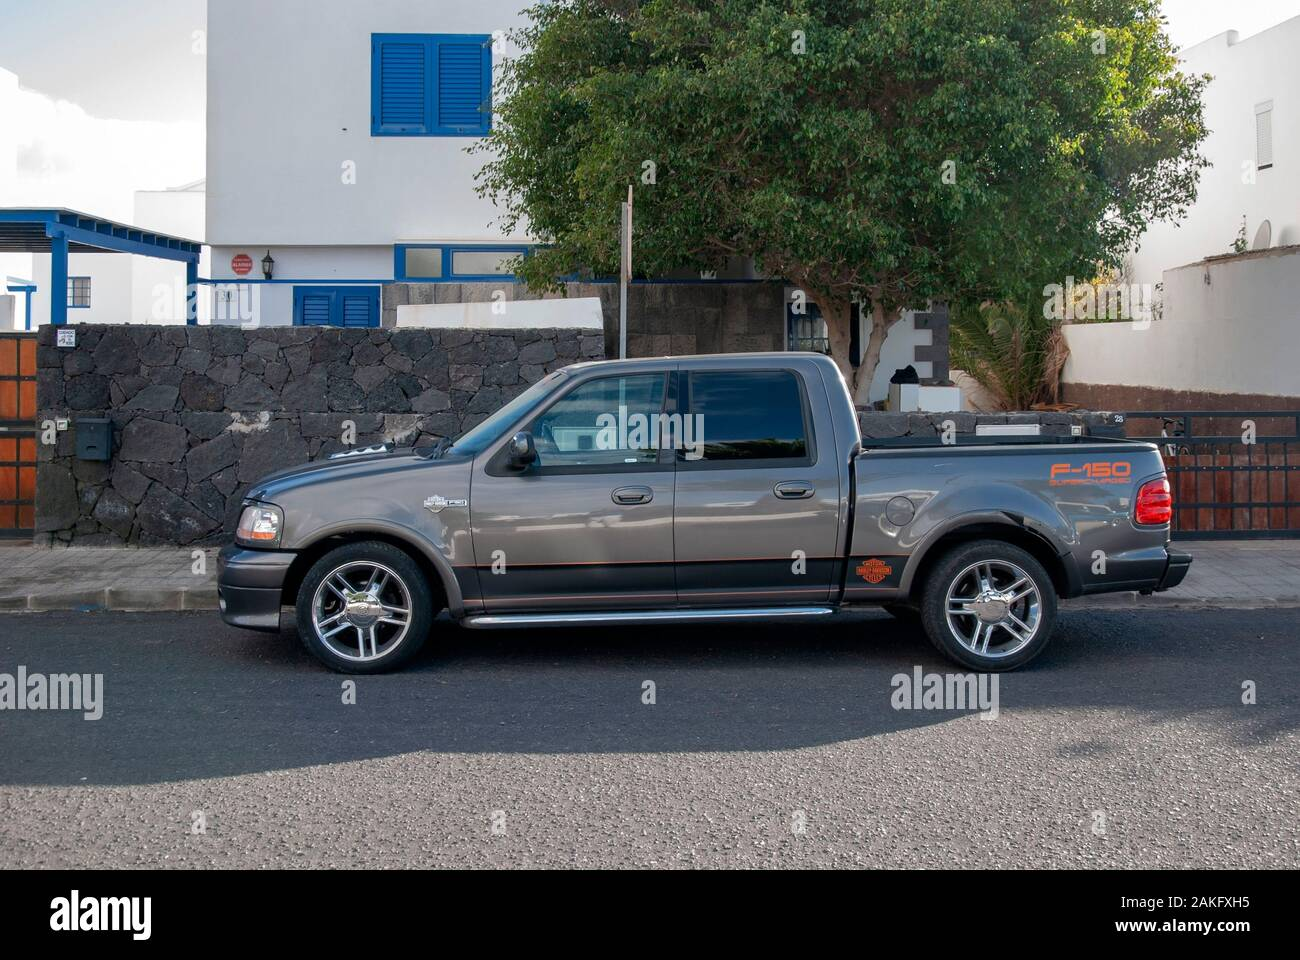 Ford F150 High Resolution Stock Photography And Images Alamy